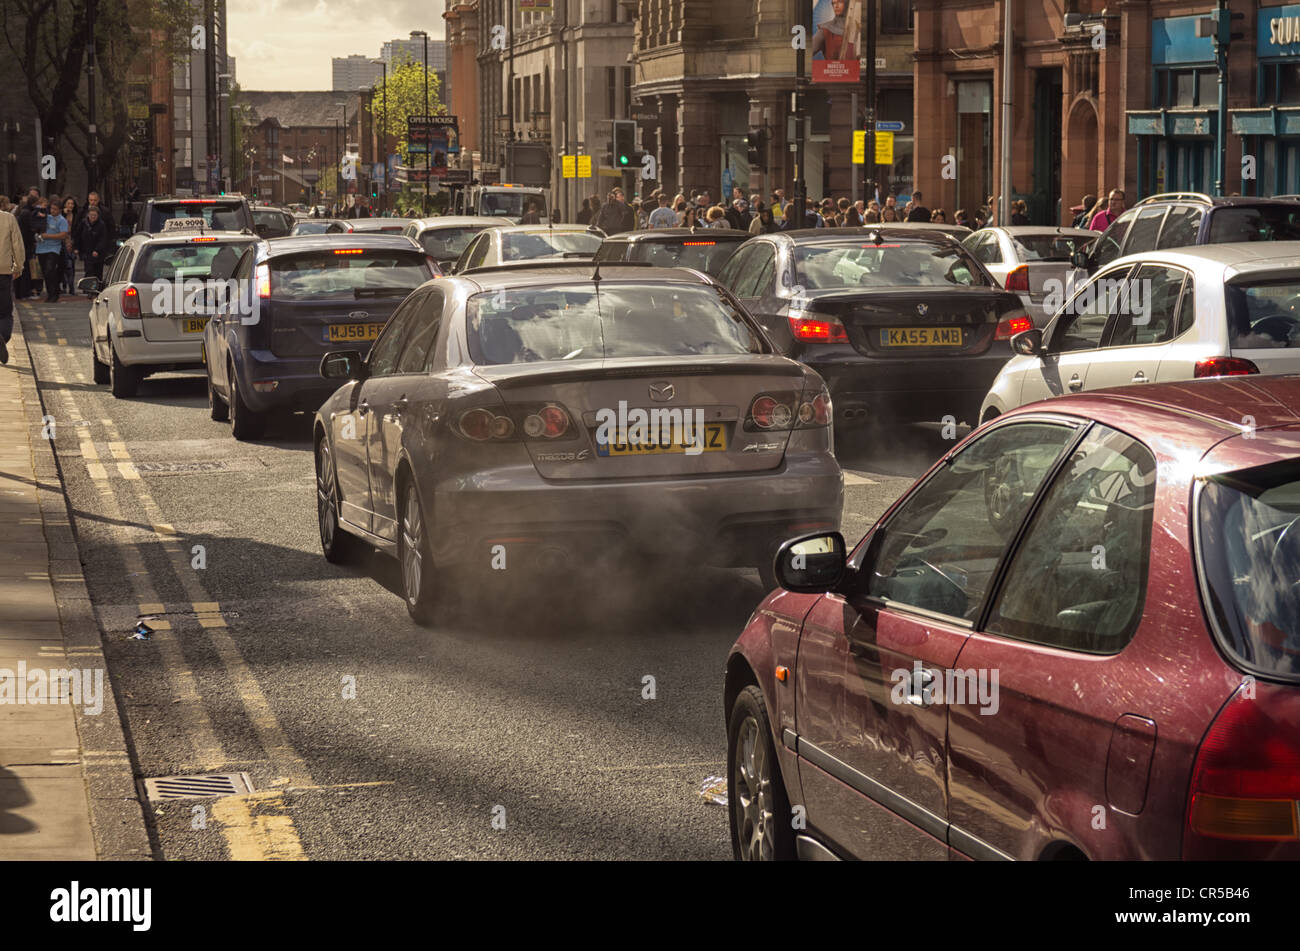 Traffic chaos in Manchester on the day that Manchester City football club paraded to celebrate their win of the - Stock Image